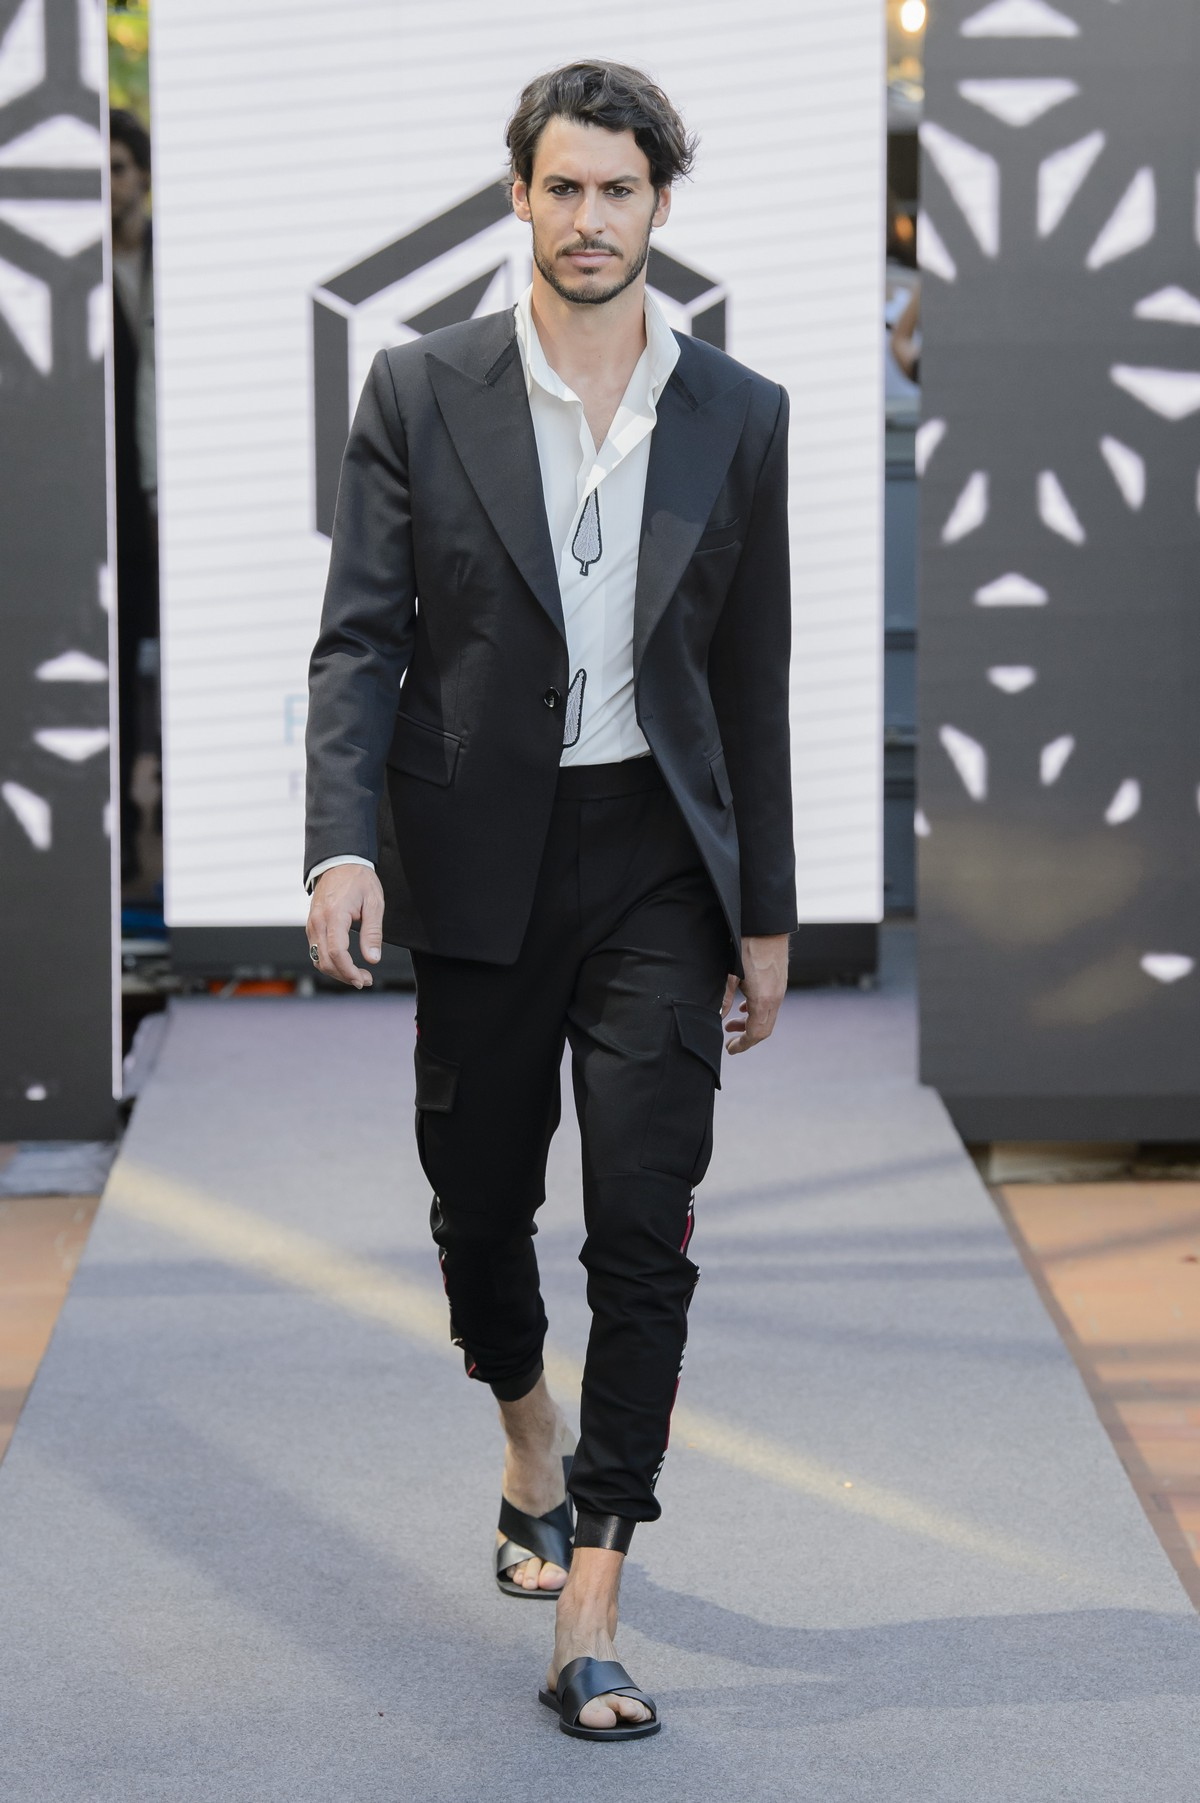 tendenze moda uomo primavera estate 2019 persian idea